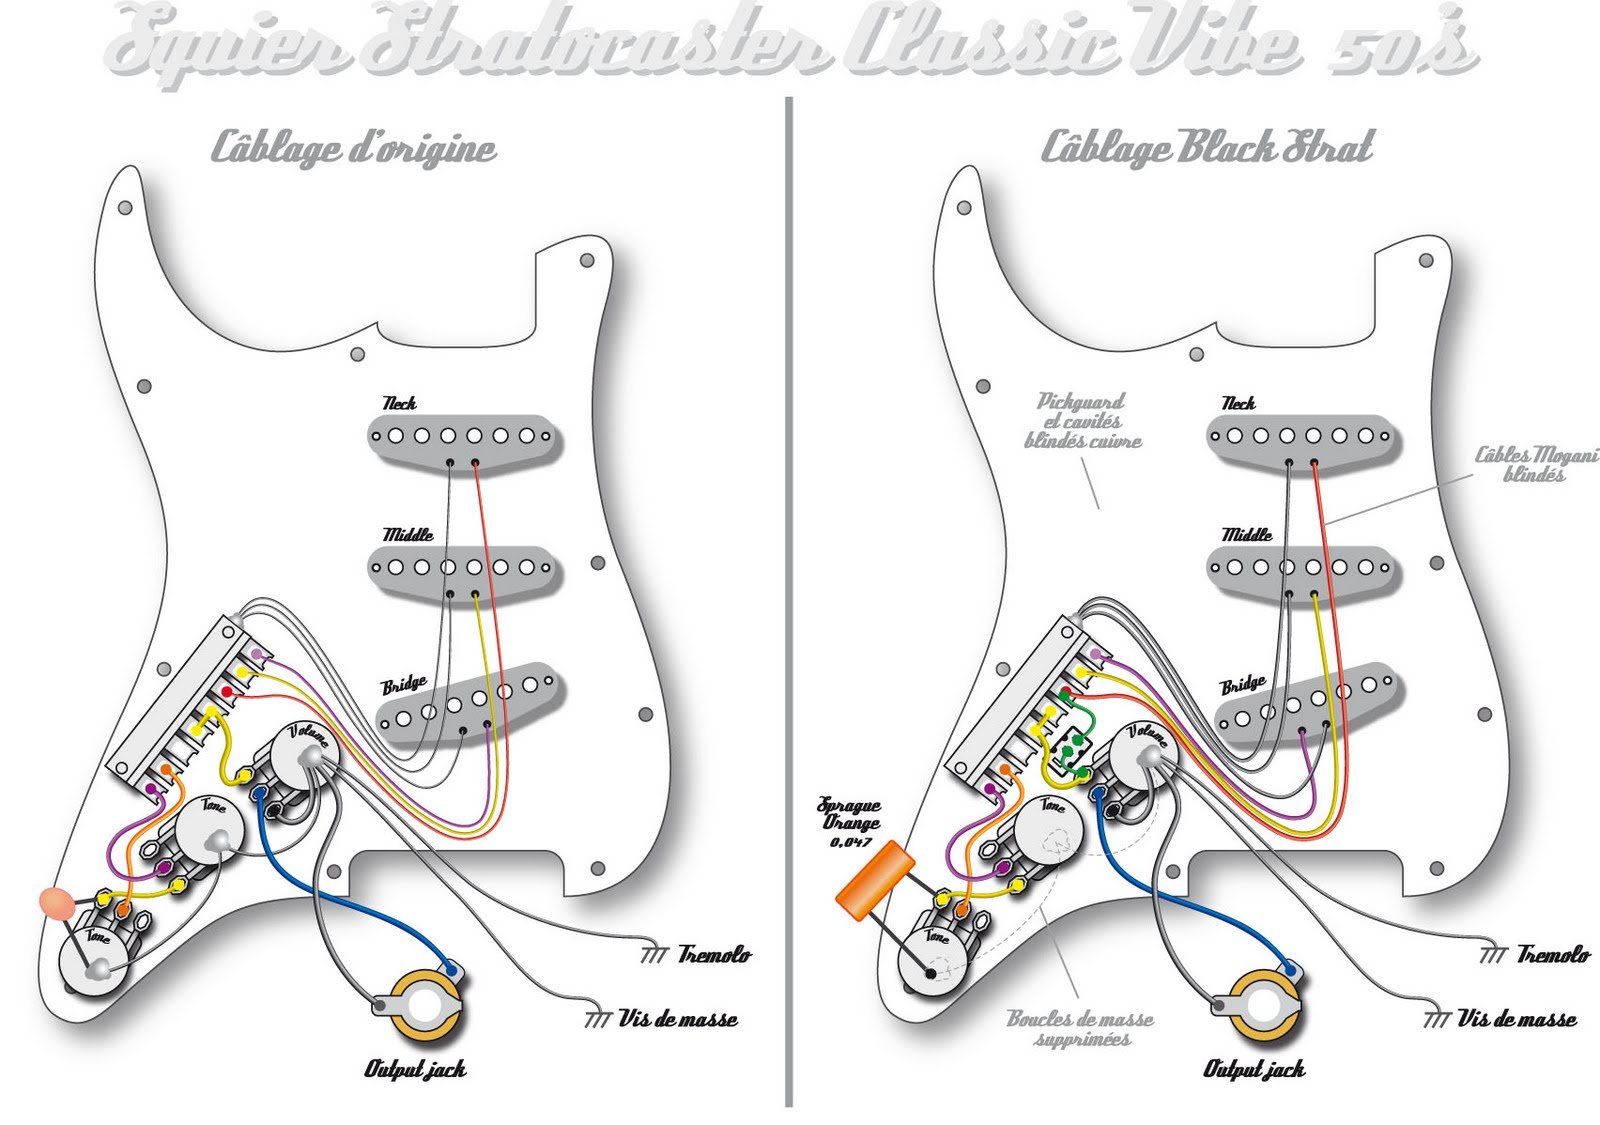 david gilmour fender stratocaster wiring diagram